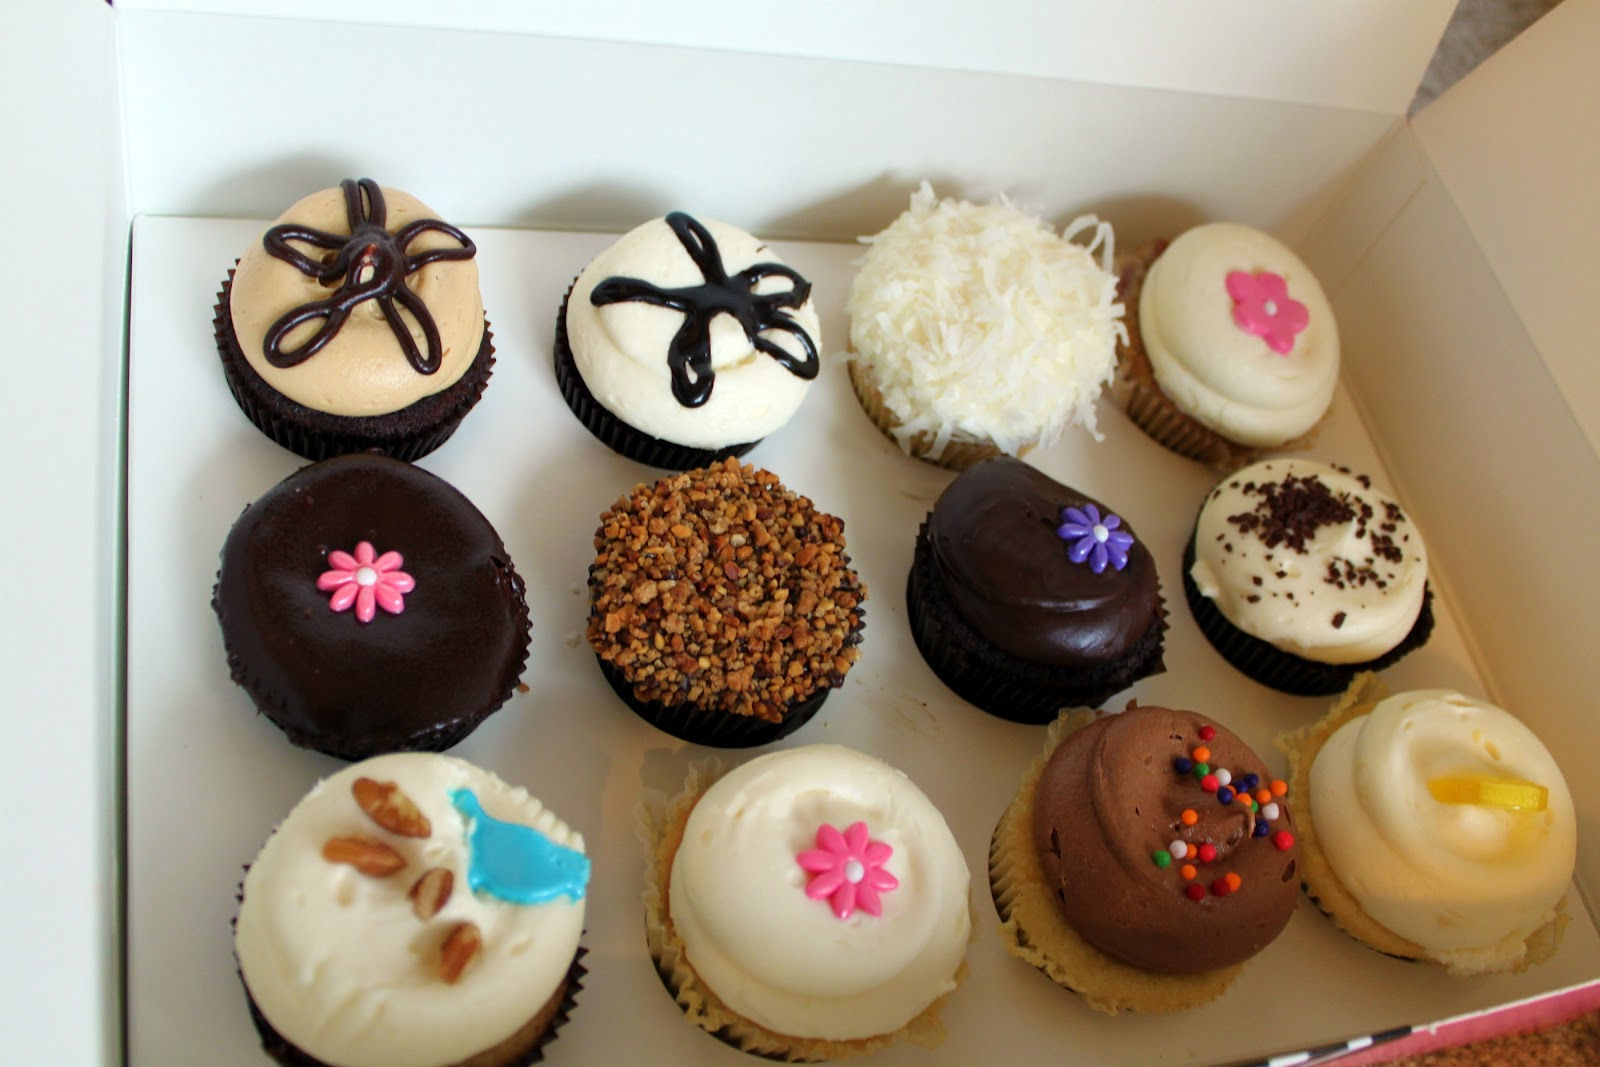 Best Way To Ship Cupcakes